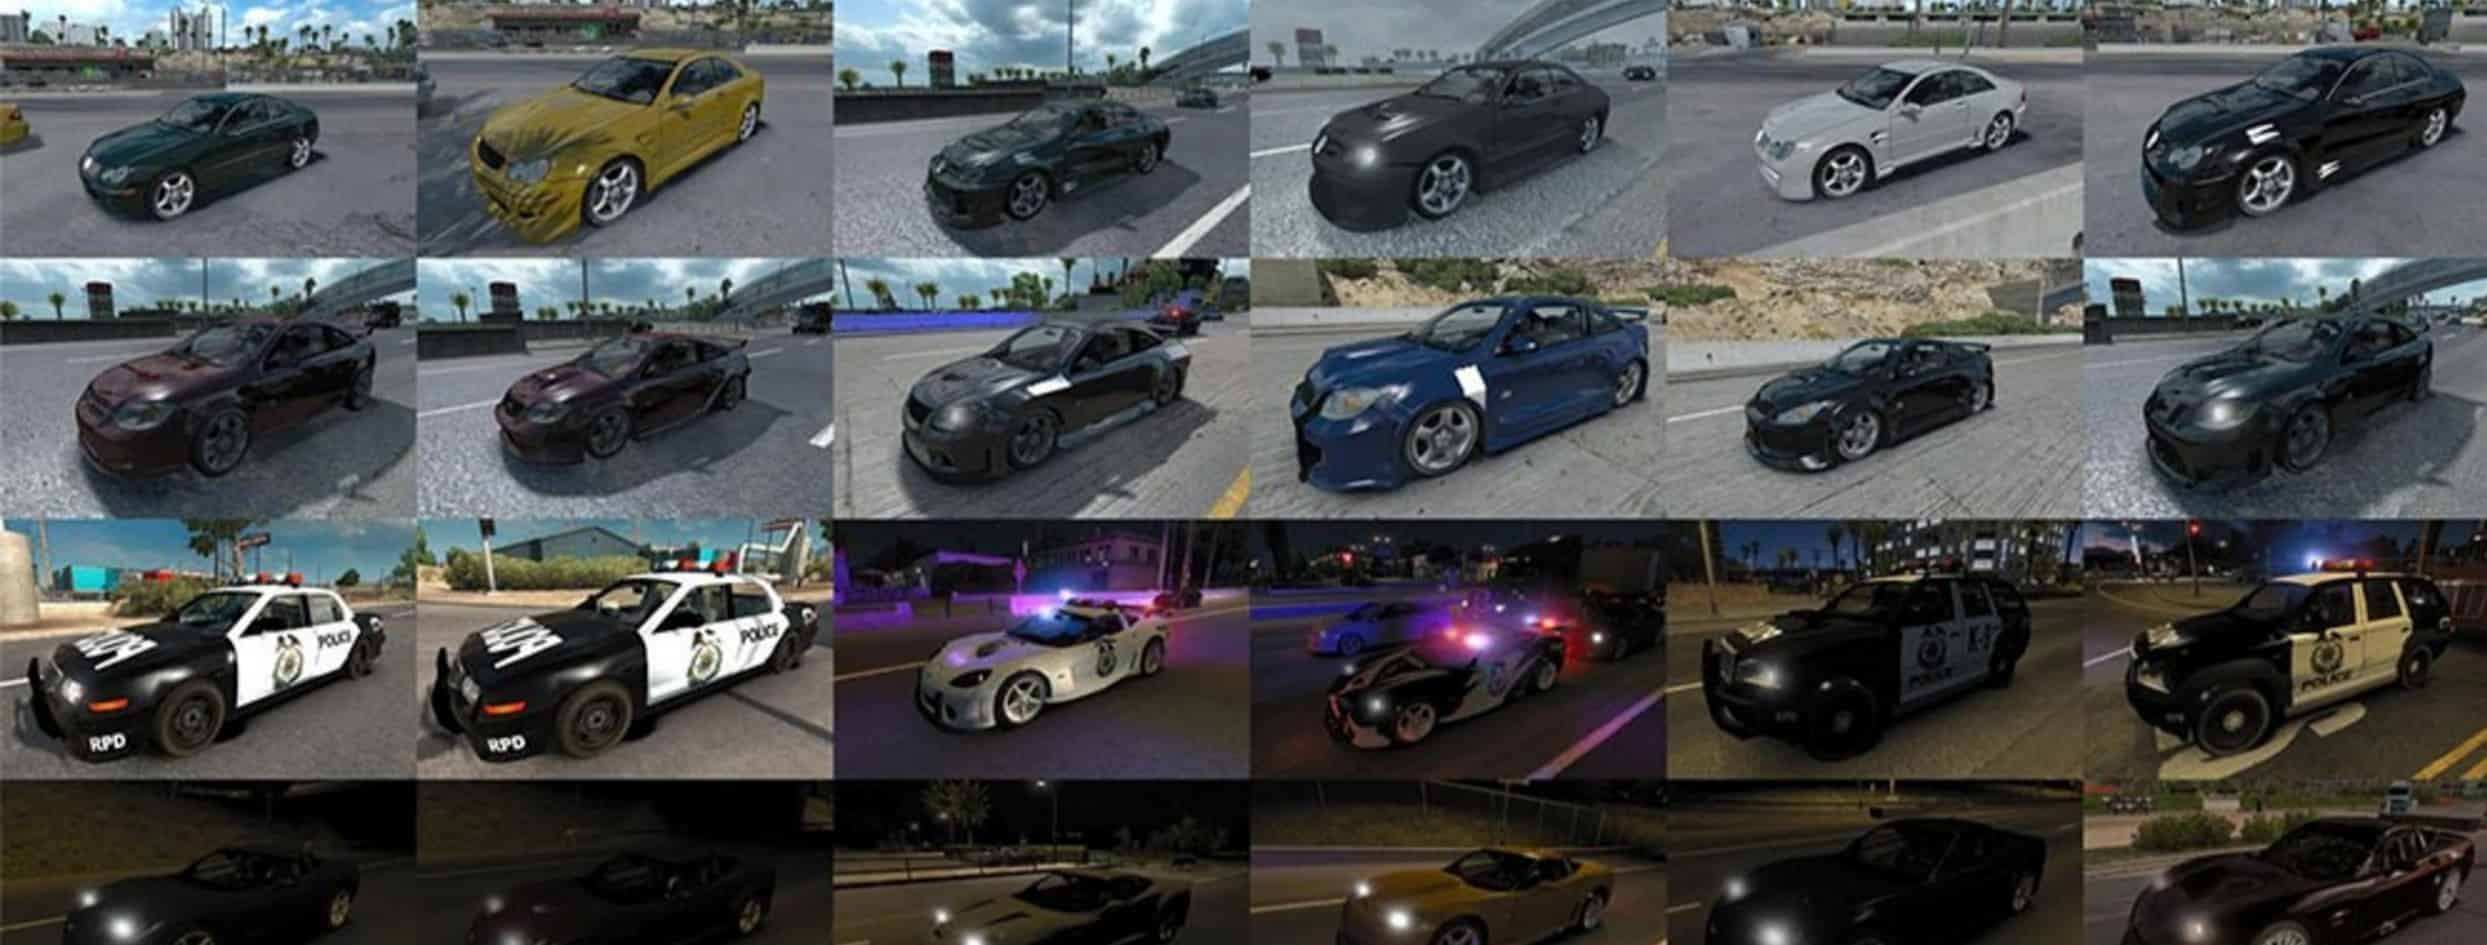 Nfs Most Wanted Traffic Pack Update 110416 Mod American